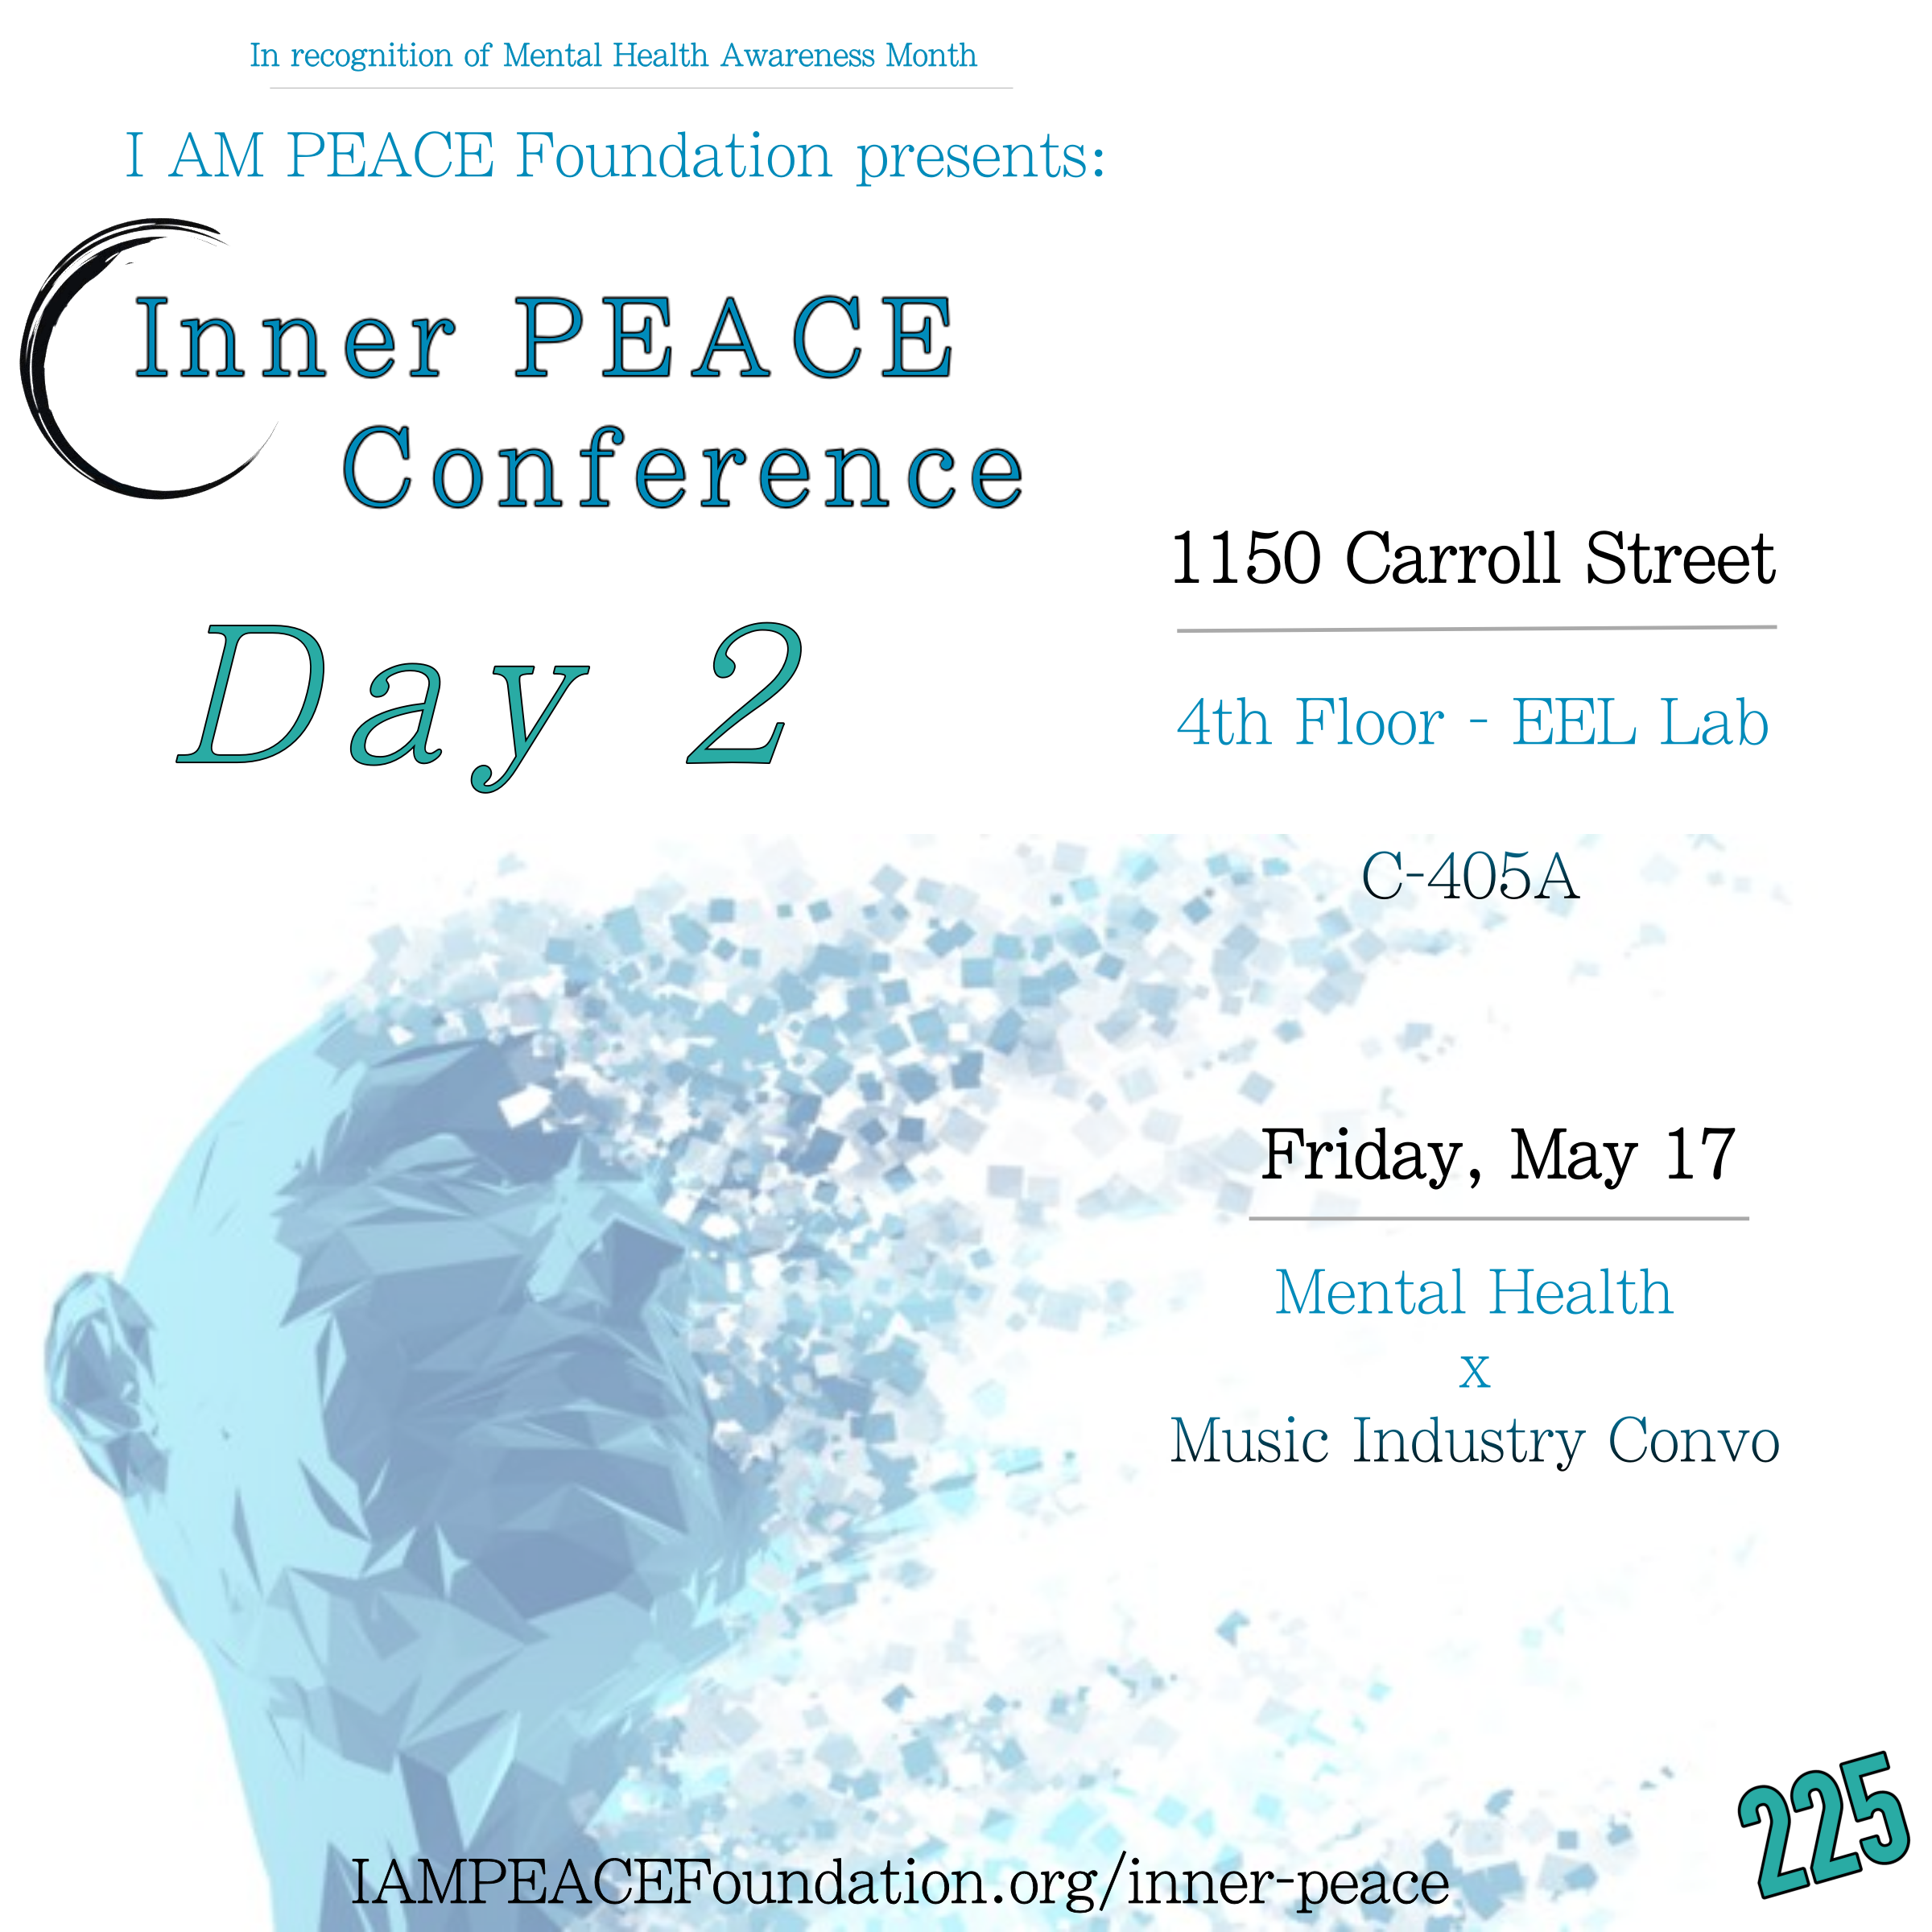 Inner PEACE DAY 2 conference flyer - PNG.png